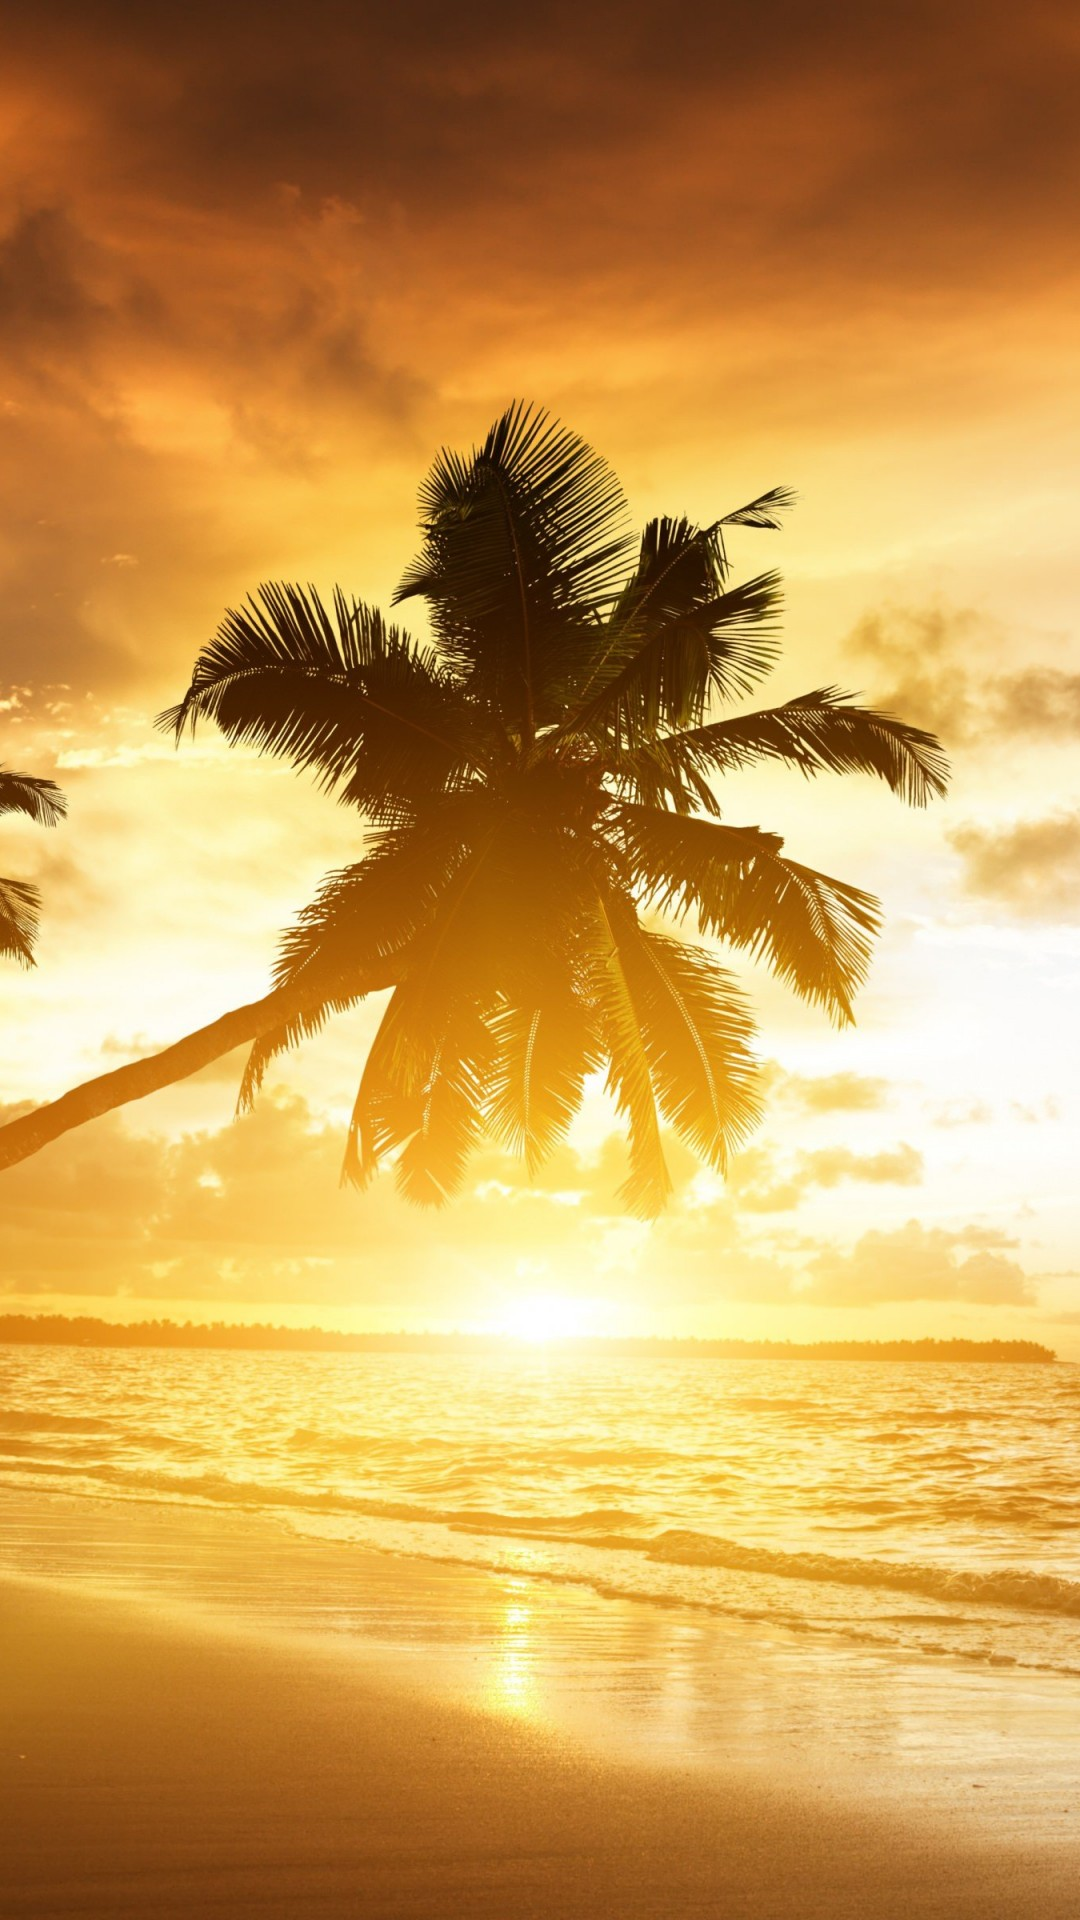 Beach With Palm Trees At Sunset Wallpaper for SONY Xperia Z2